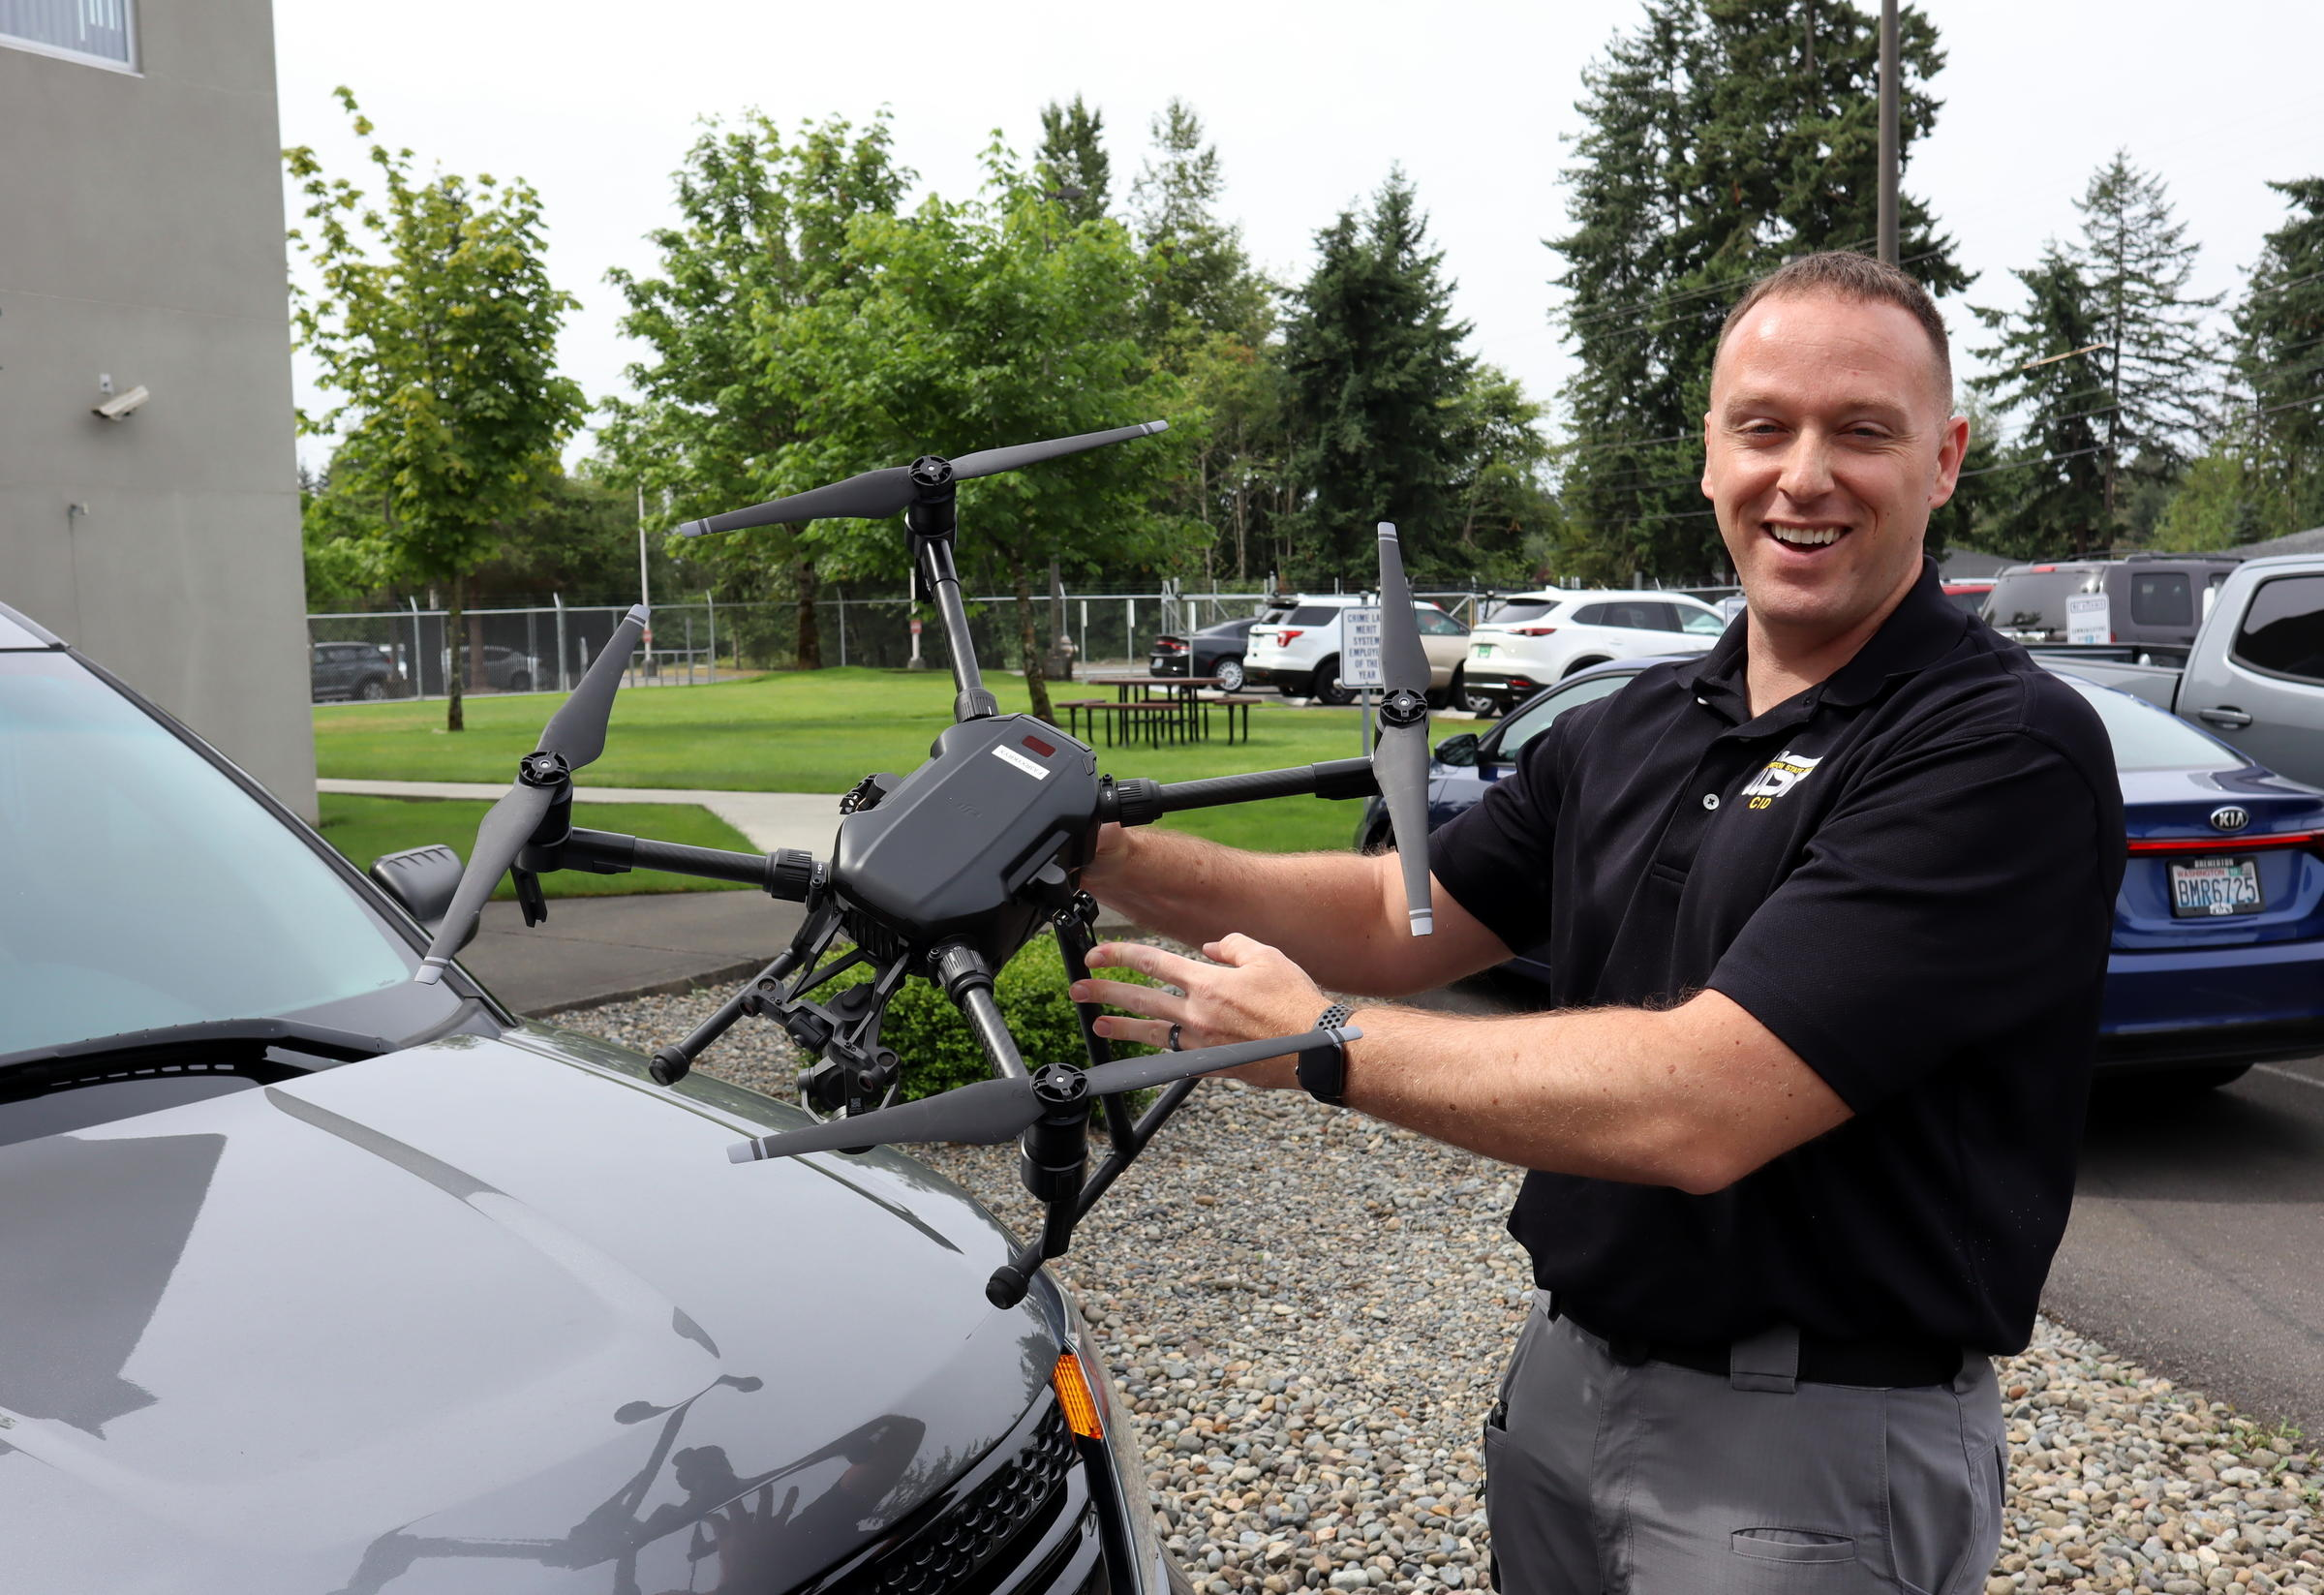 Washington State Patrol builds up fleet of 111 drones | KLCC